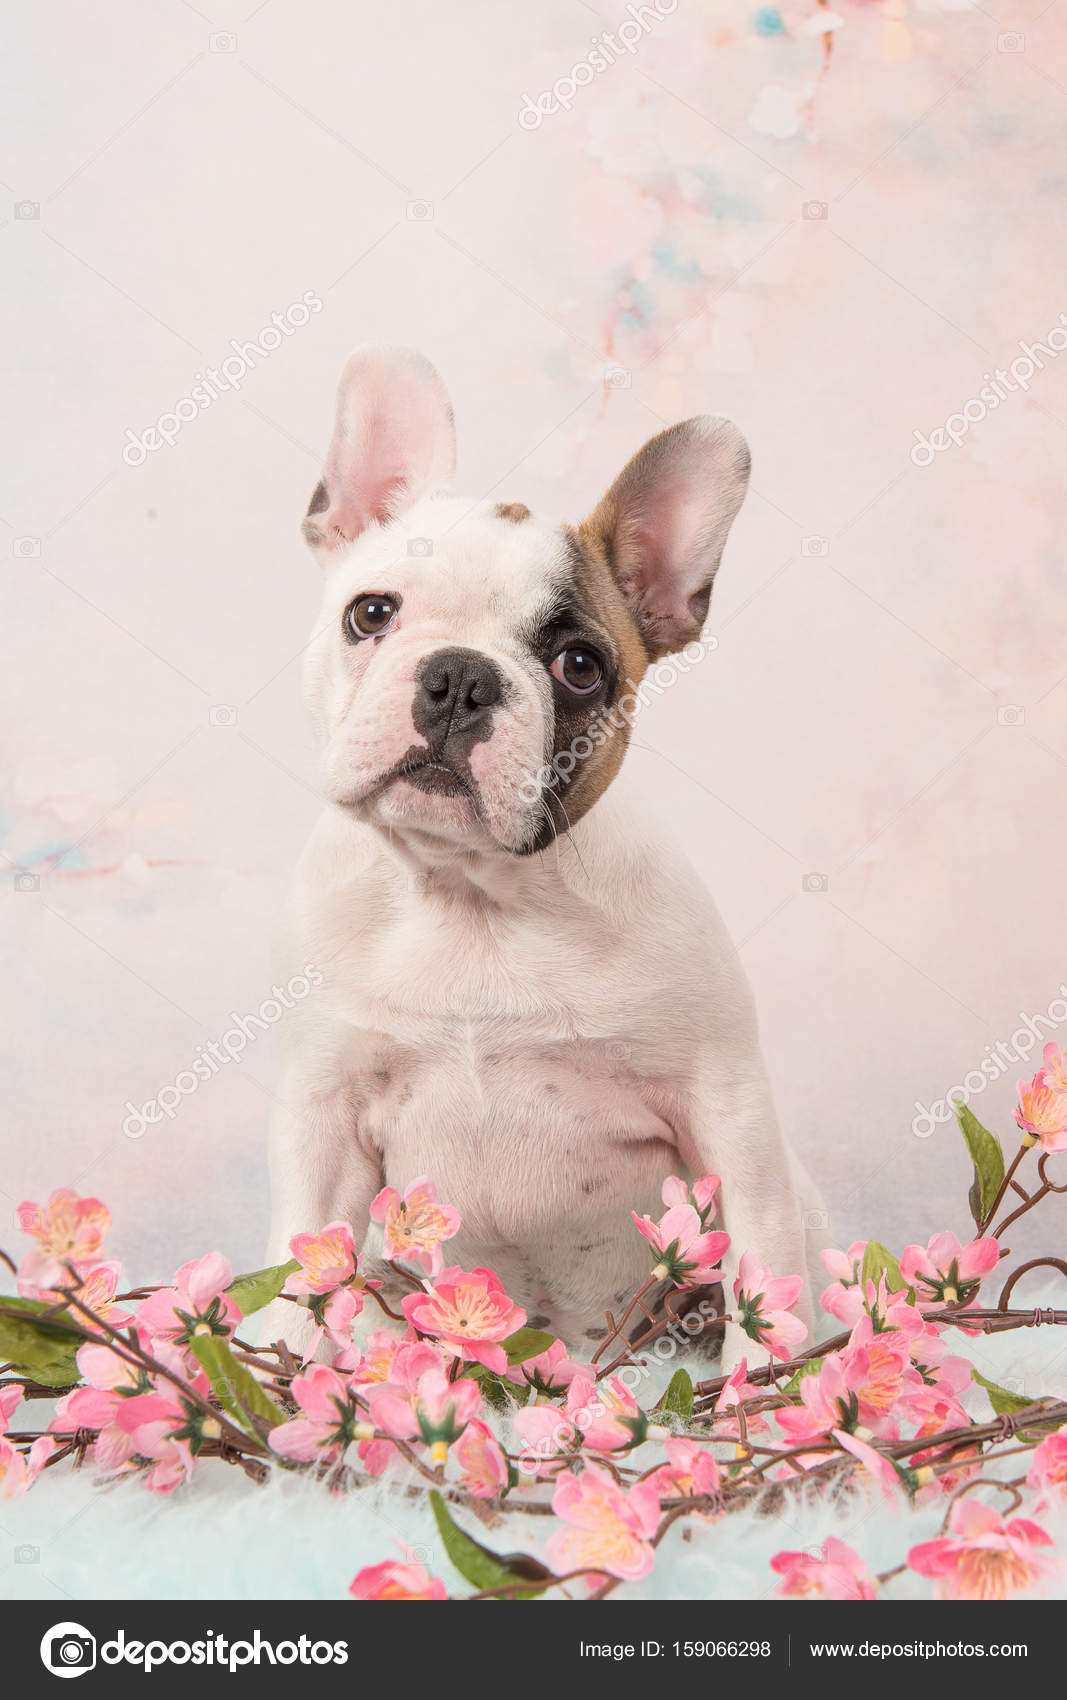 Cute Sitting White And Brown French Bulldog Puppy Facing The Camera On A Pink Romantic Flower Background Stock Photo C Miraswonderland 159066298